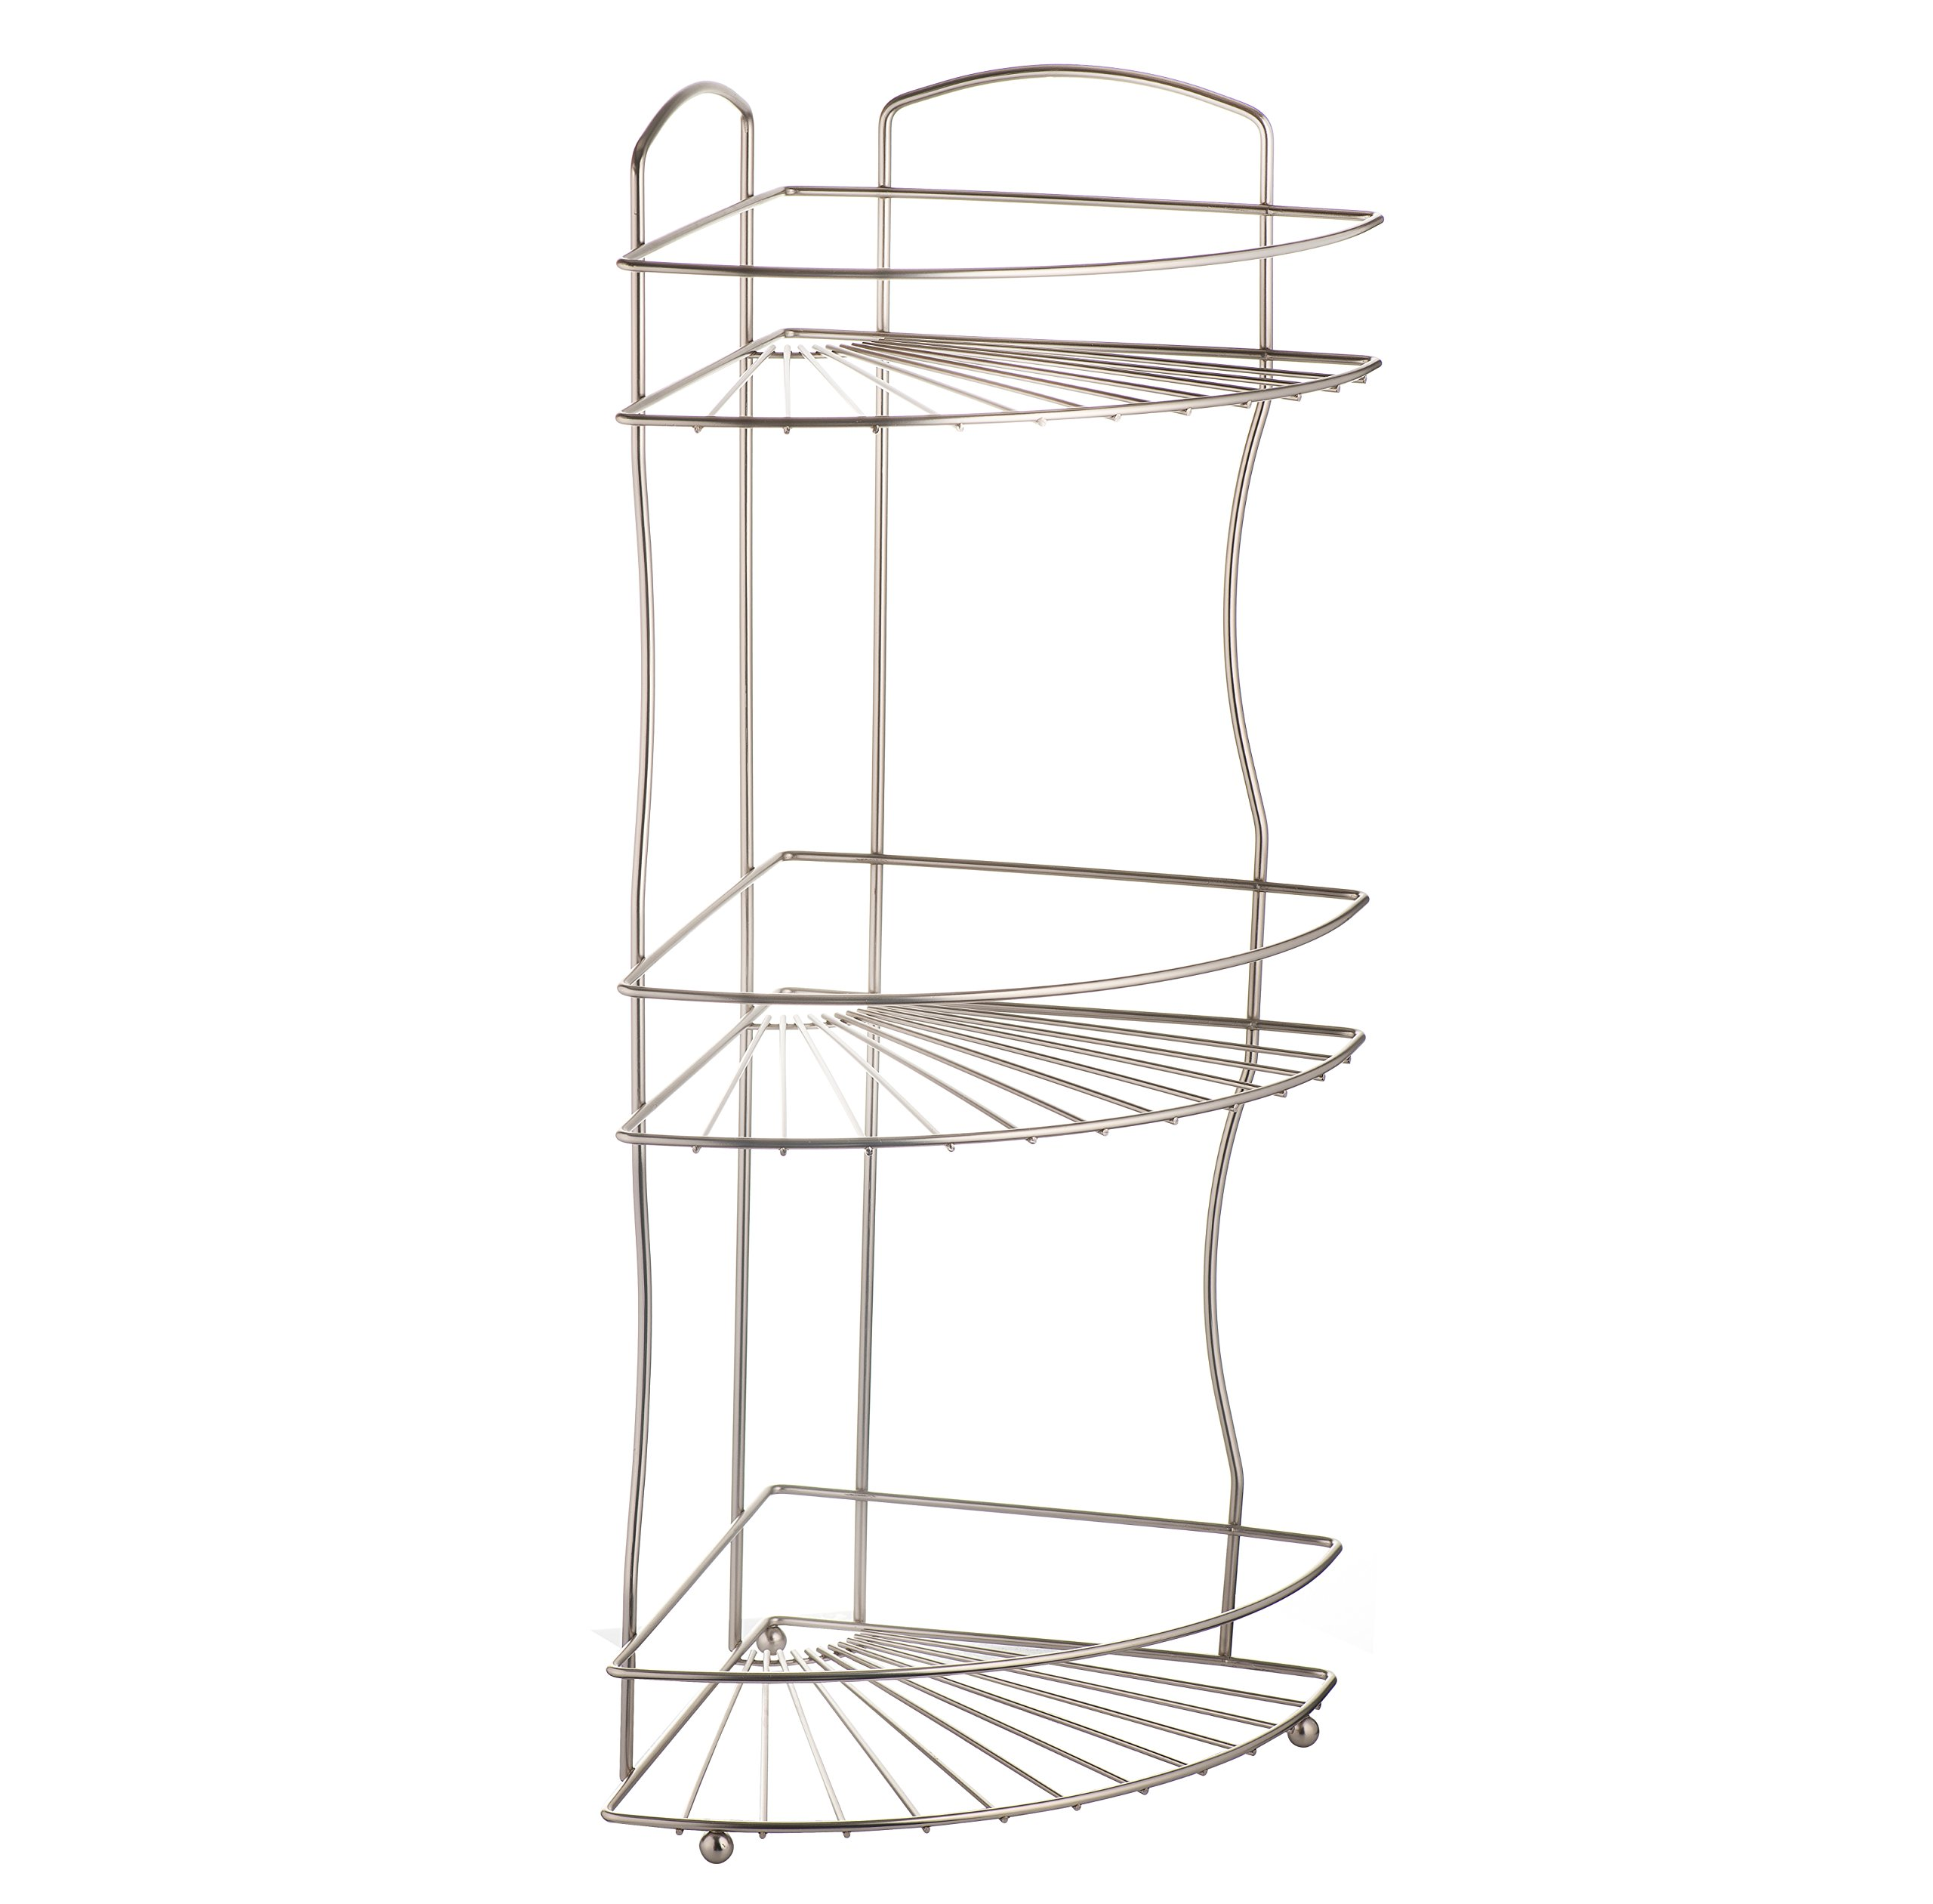 AMG and Enchante Accessories Free Standing Bathroom Spa Tower Floor Caddy, FC232-A SNI, Satin Nickel by AMG (Image #6)